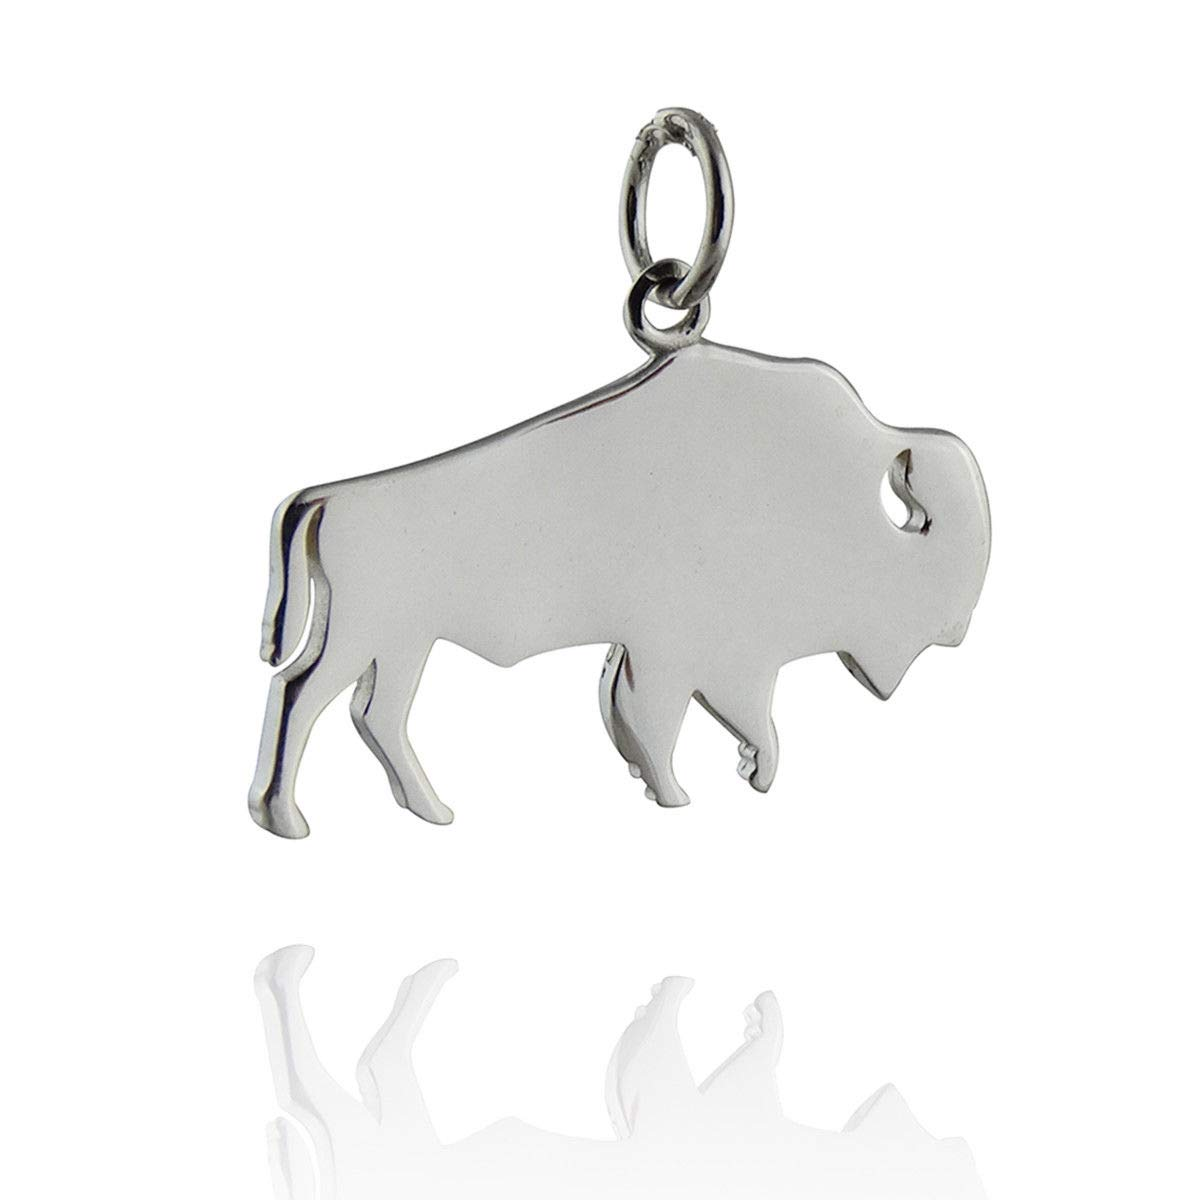 Buffalo Silhouette Charm - 925 Sterling Silver - Pendant Wild Animal Bison - Jewelry Accessories Key Chain Bracelets Crafting Bracelet Necklace Pendants